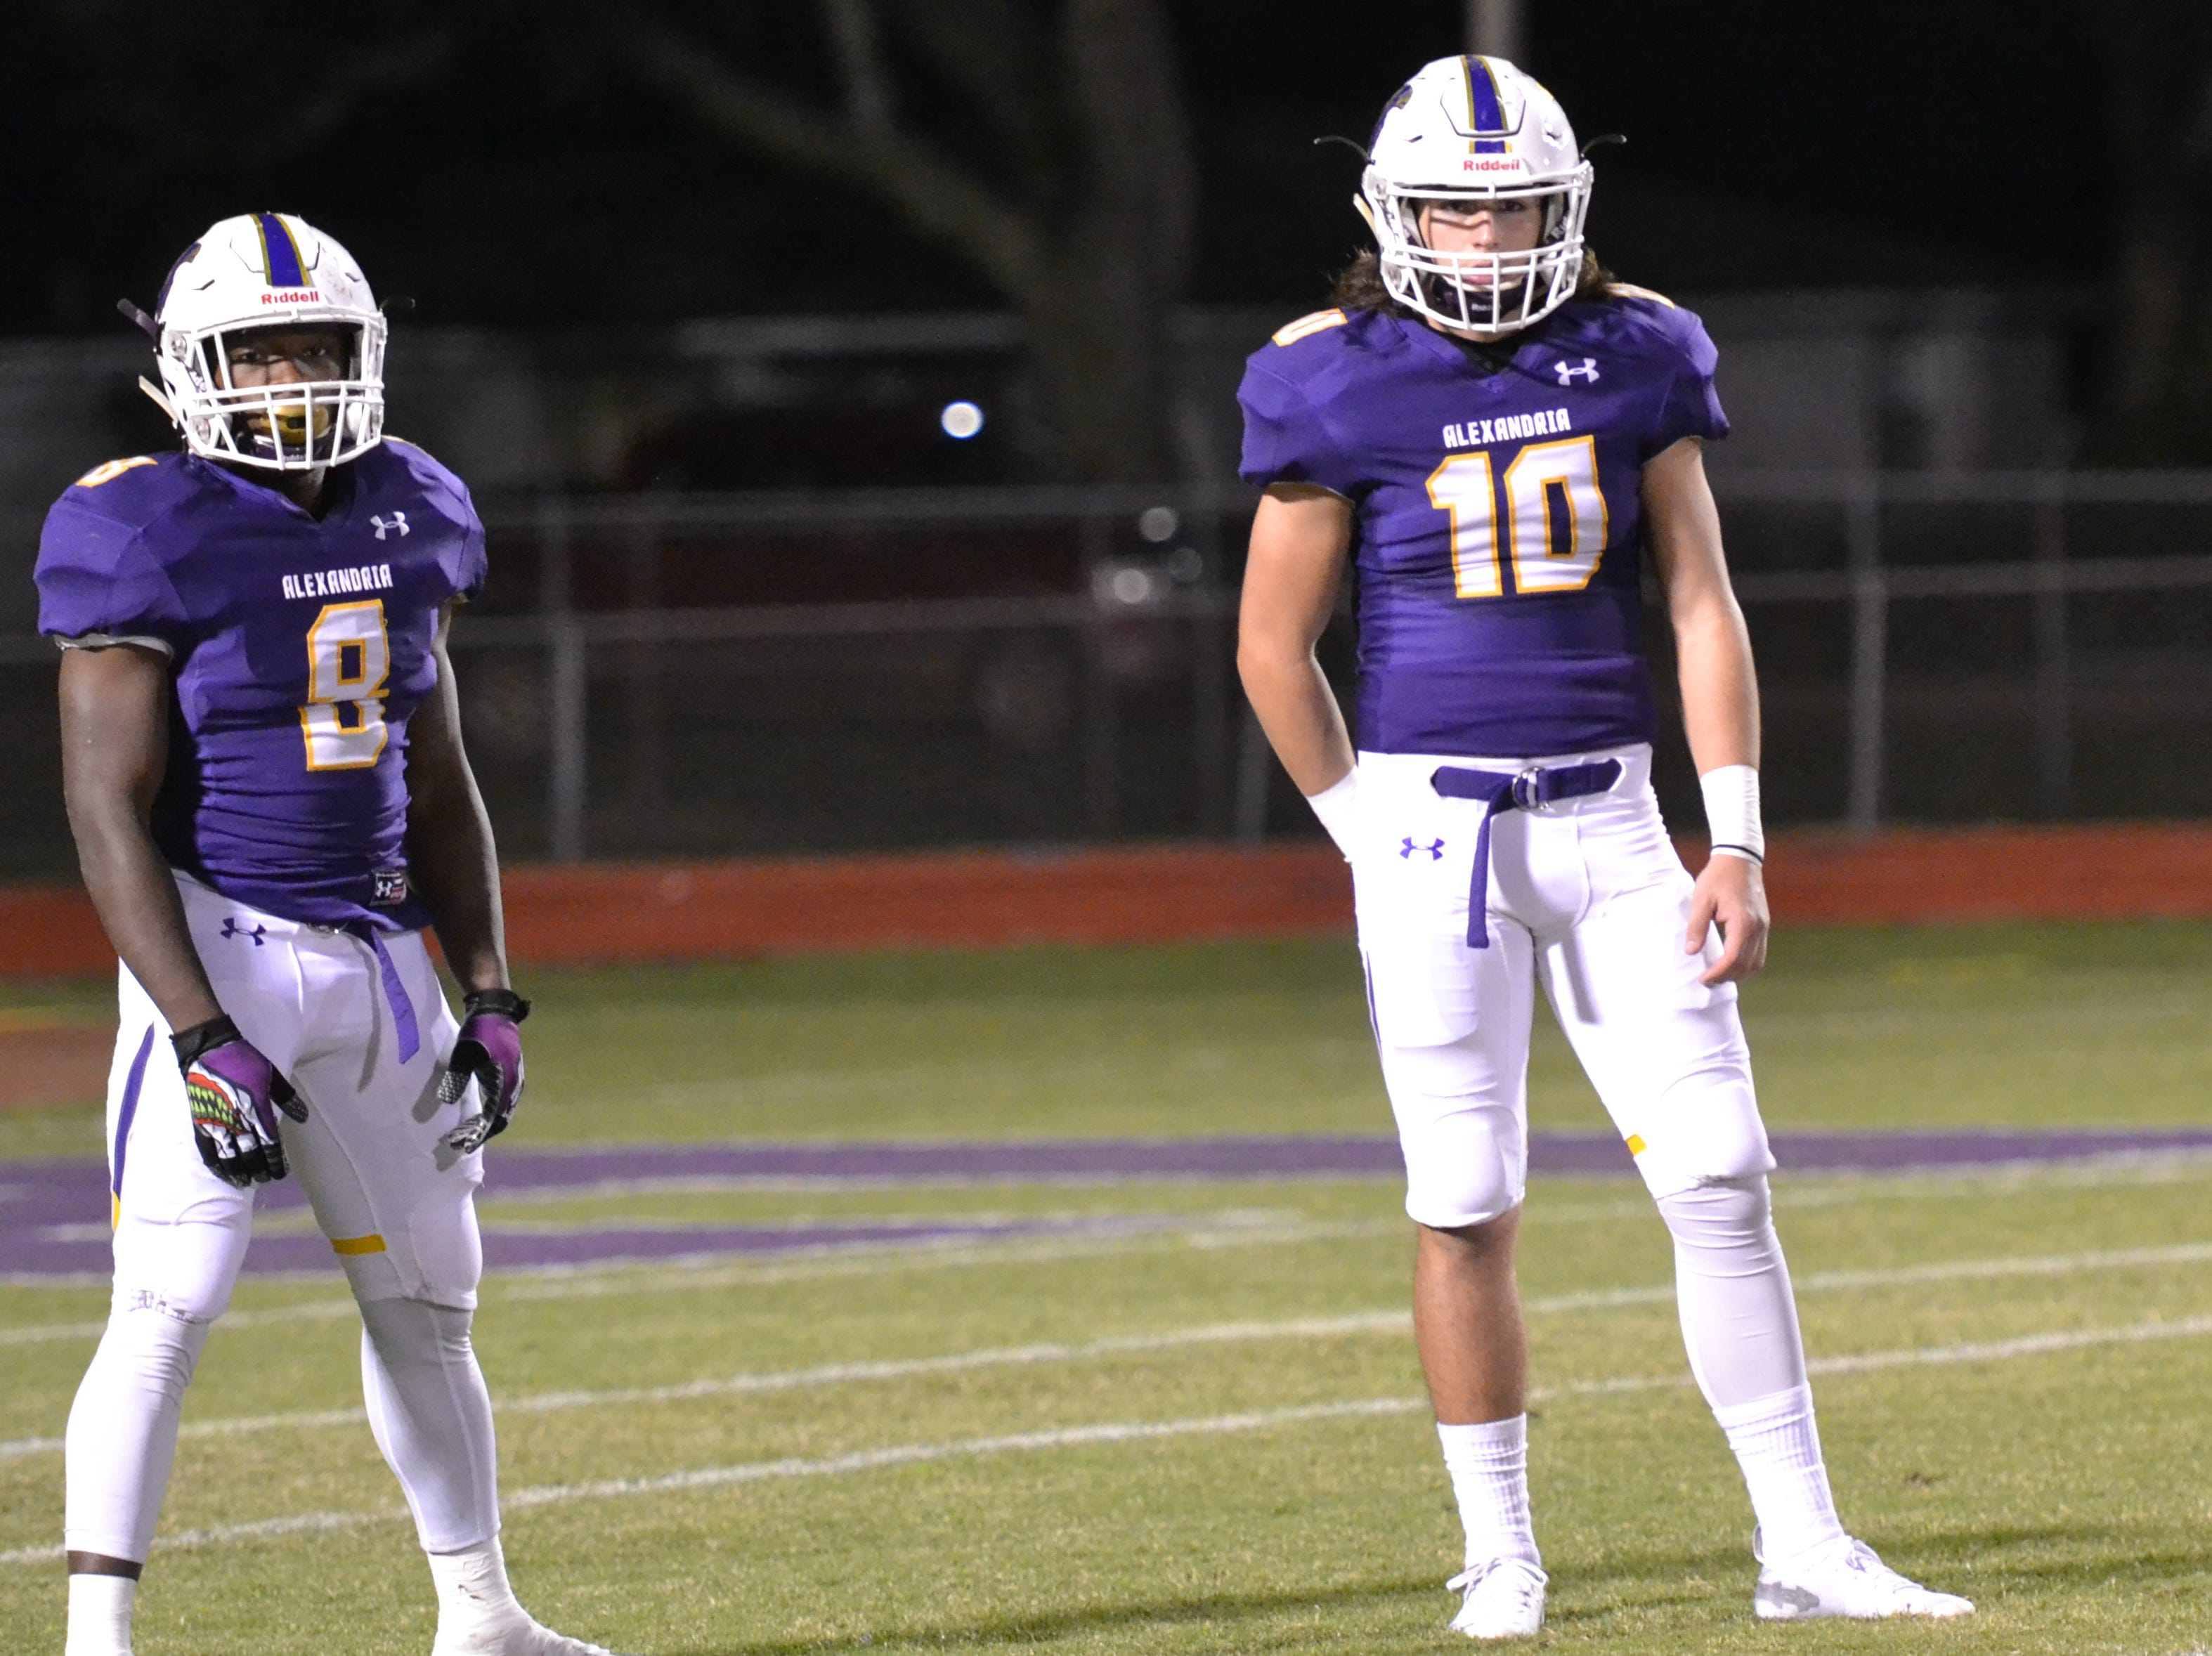 ASH quarterback Ben Hesnis (10) and running back Richard Chark (8) look to the coaches for the play call. The ASH Trojans fell to the Ouachita Parish Lions 42-20 Thursday, Nov. 1, at Alexandria Senior High.